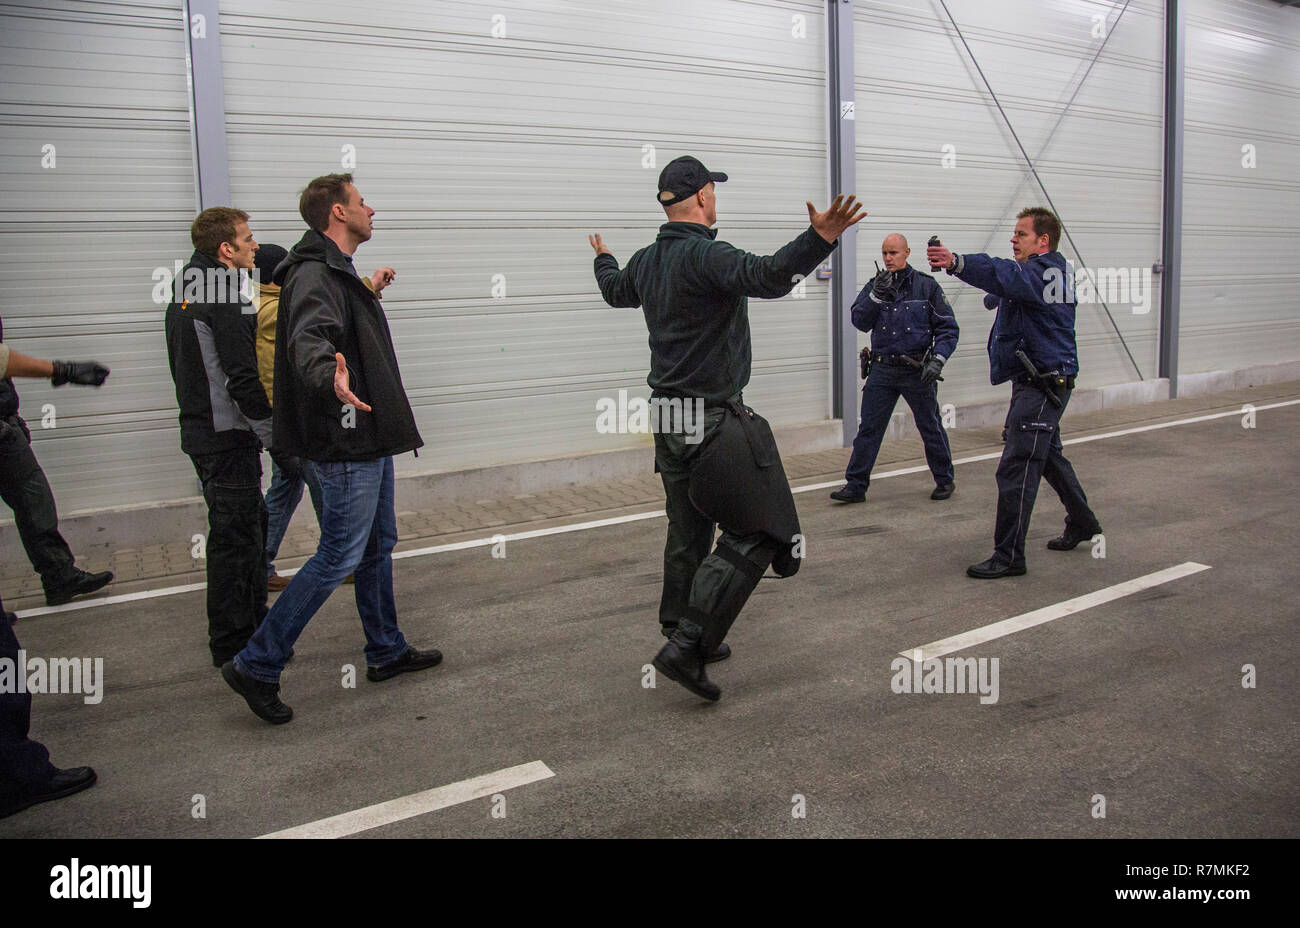 Operational tactics training for the police, handling of violent combat situations, firearms training, Regional Police Training - Stock Image